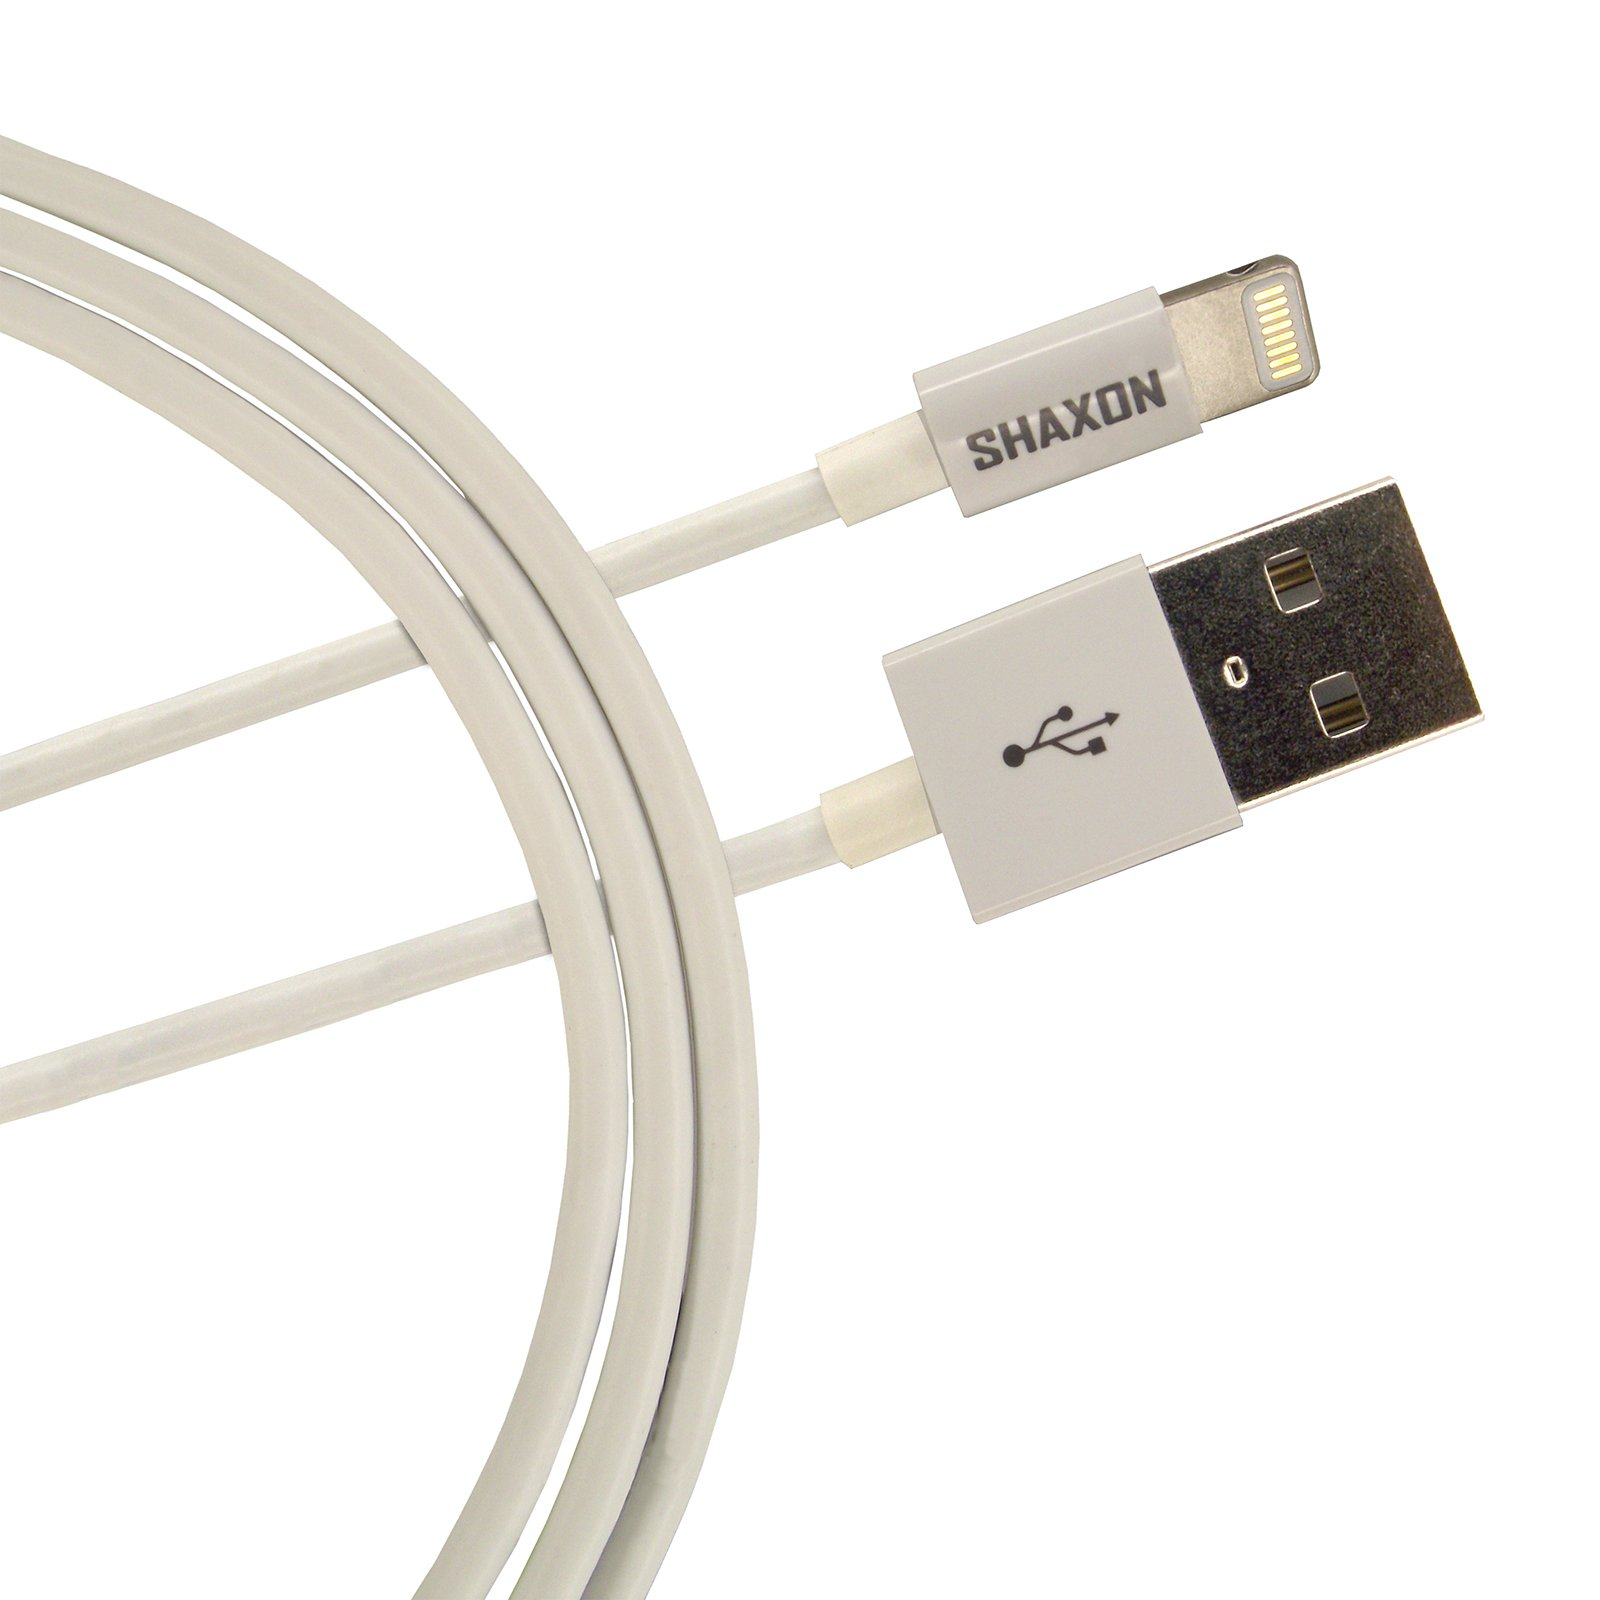 Cable Shaxon Data Cable for iPhone, iPod, iPad - Retail P …